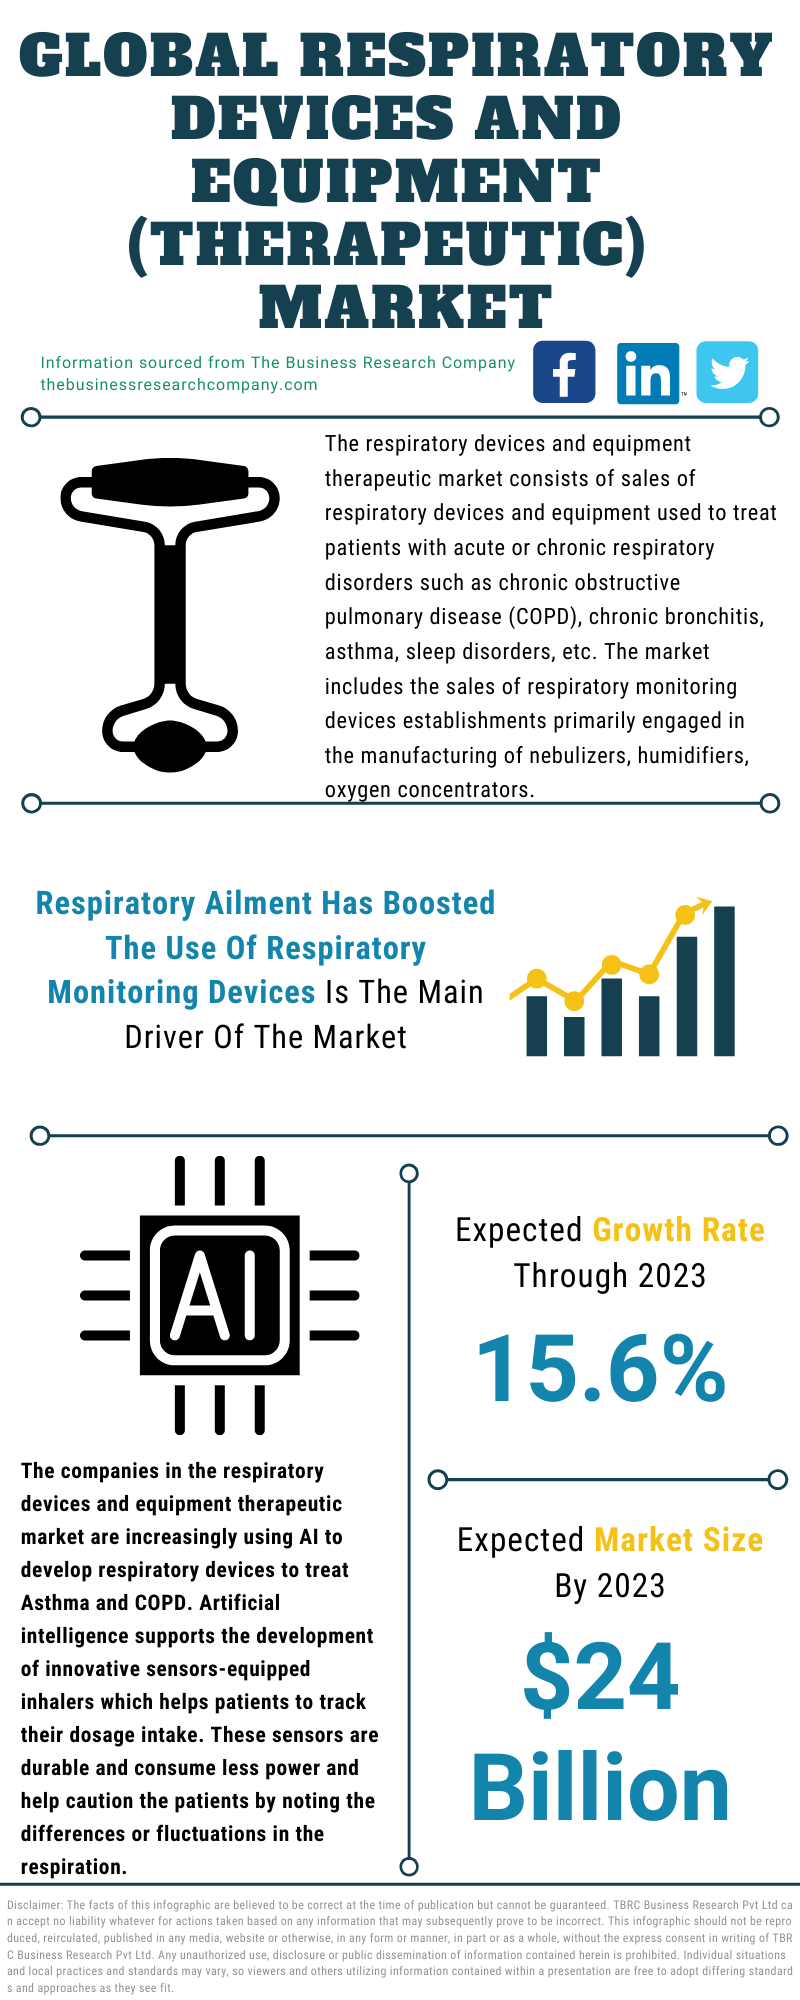 Respiratory Devices And Equipment (Therapeutic) Market